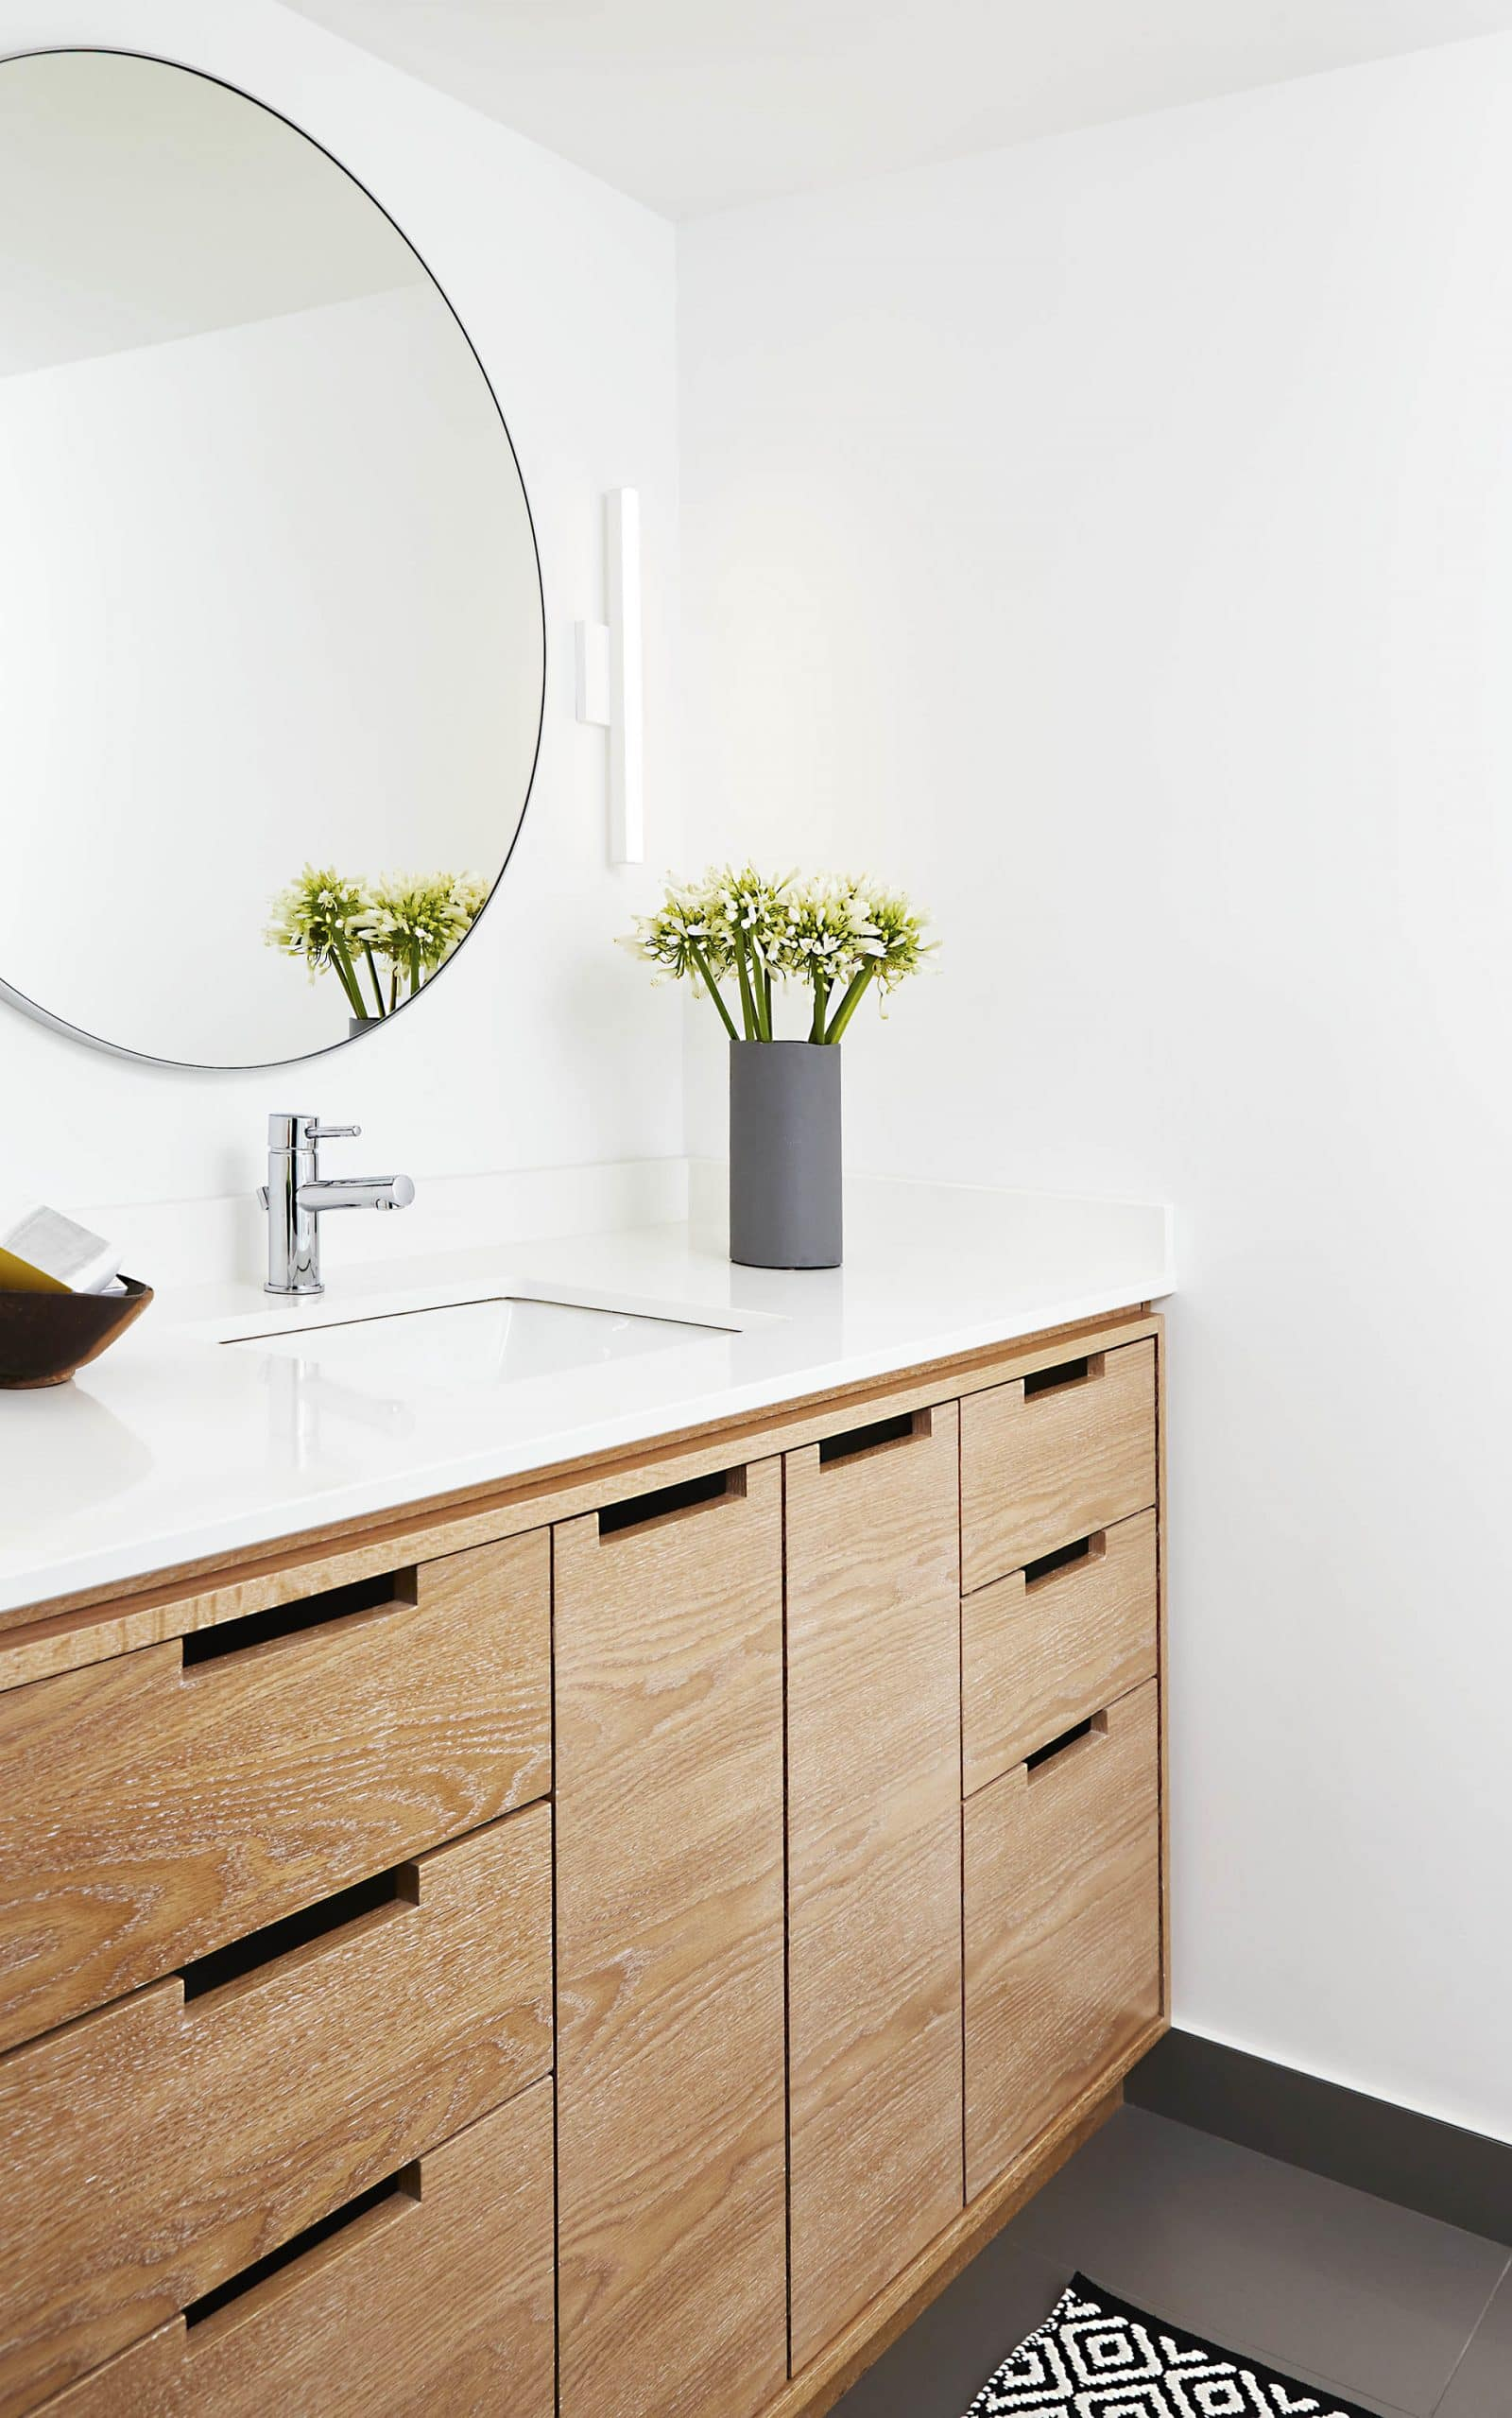 Limed Oak Blonde Wood Bathroom Vanity With Round Mirror White Counter Undermount Sink Chrome Faucet White Sconce And White Walls And Ceiling Toronto Interior Design Group